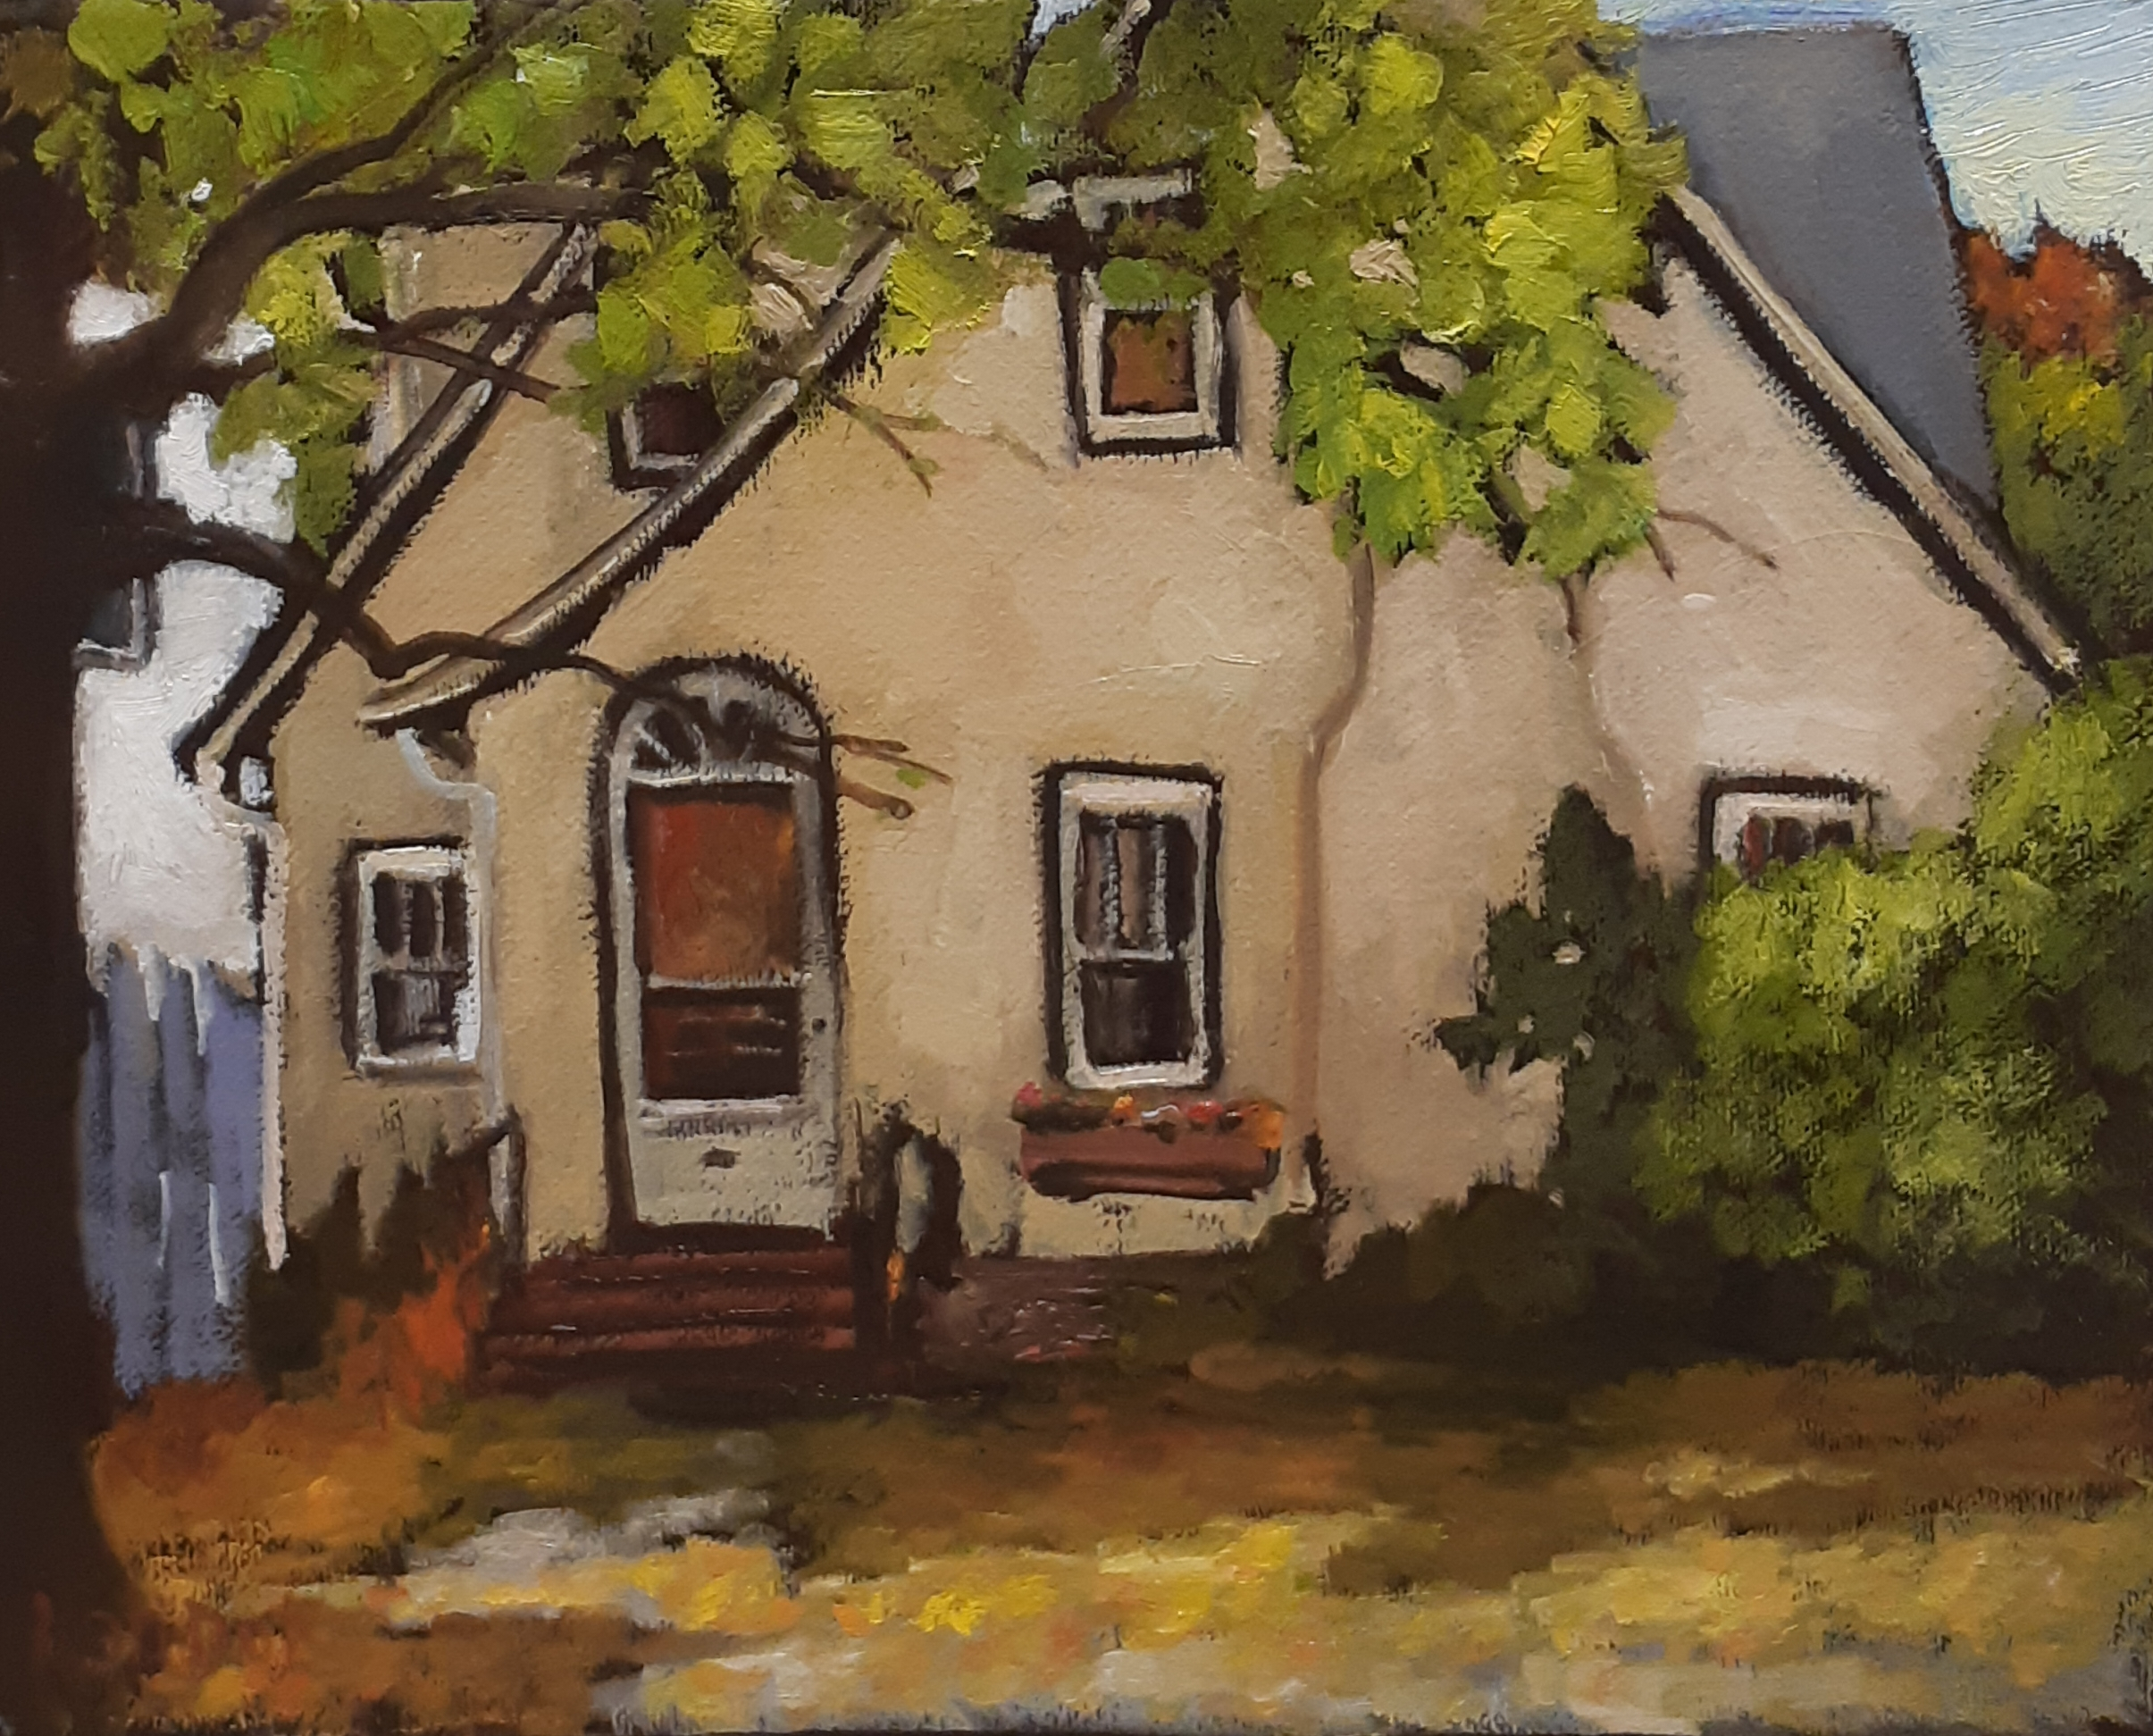 LITTLE YELLOW HOUSE - 8X10 - OIL ON CANVAS - 2019